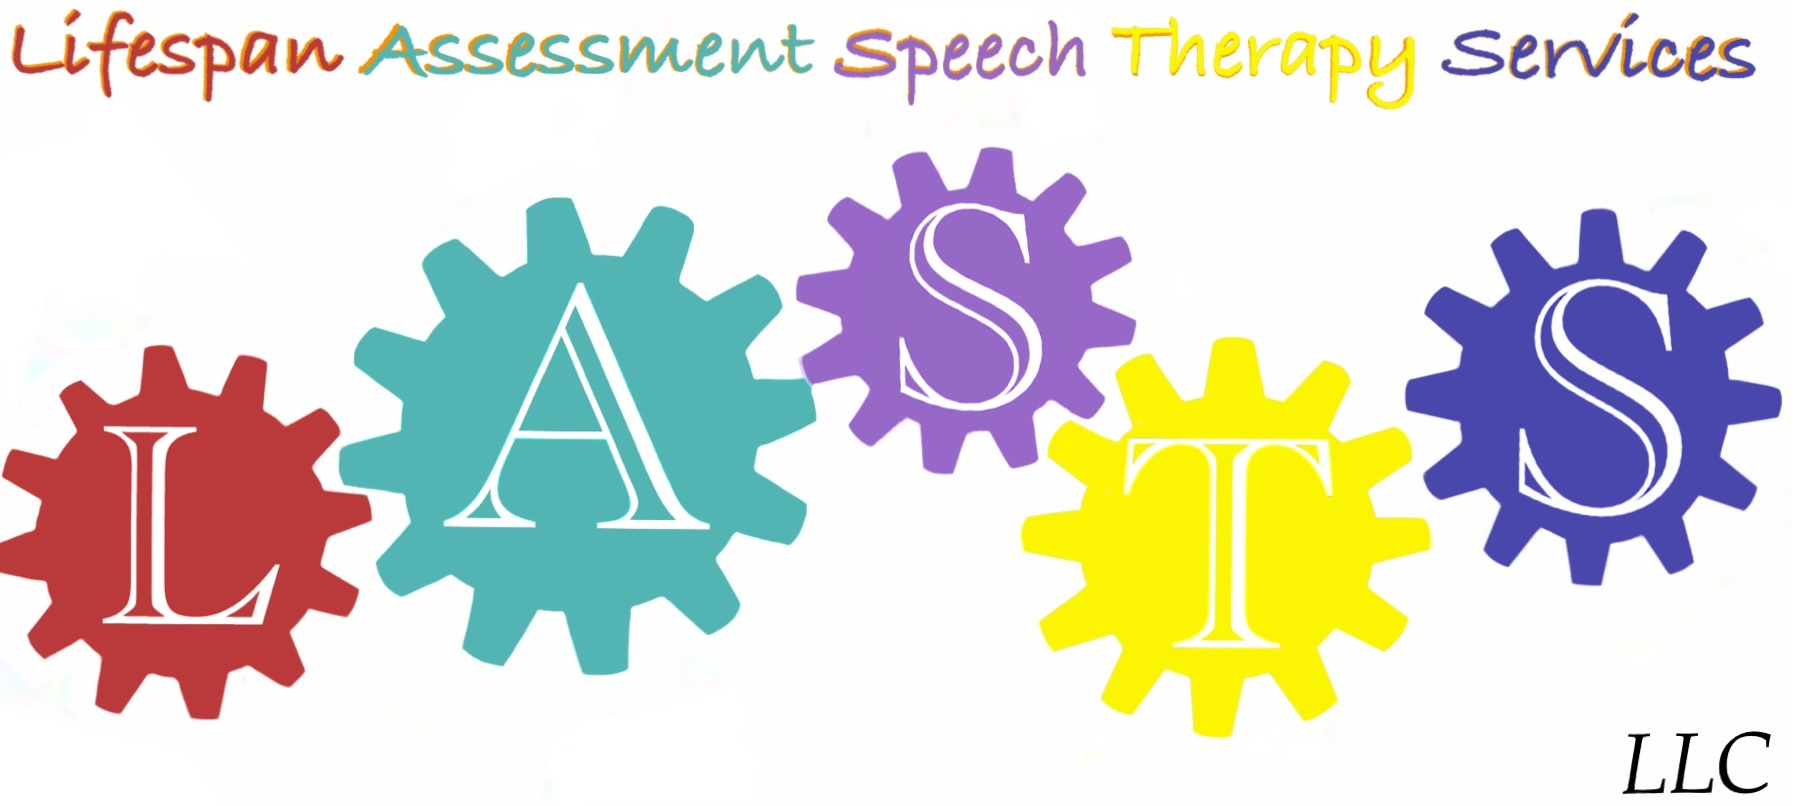 LASTS Speech Therapy